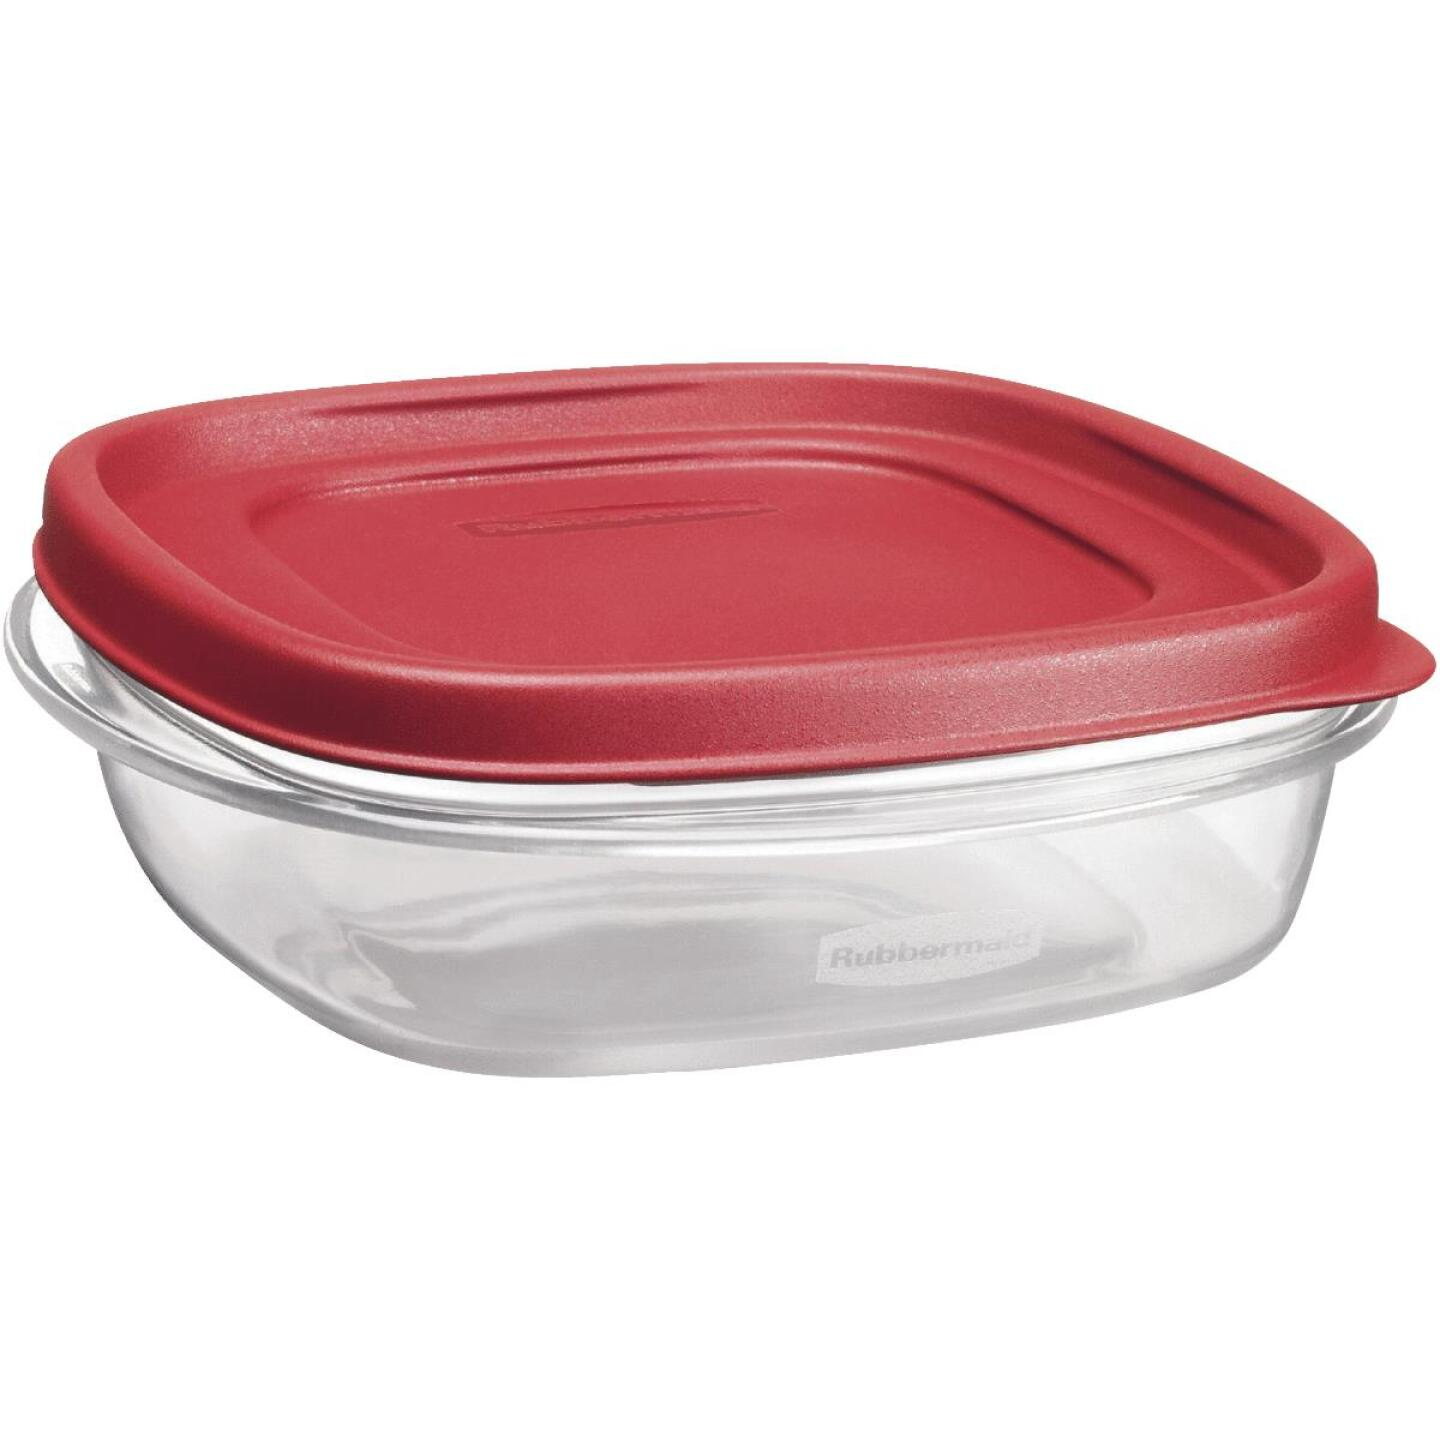 Rubbermaid Easy Find Lids 3 C. Clear Round Food Storage Container Image 2